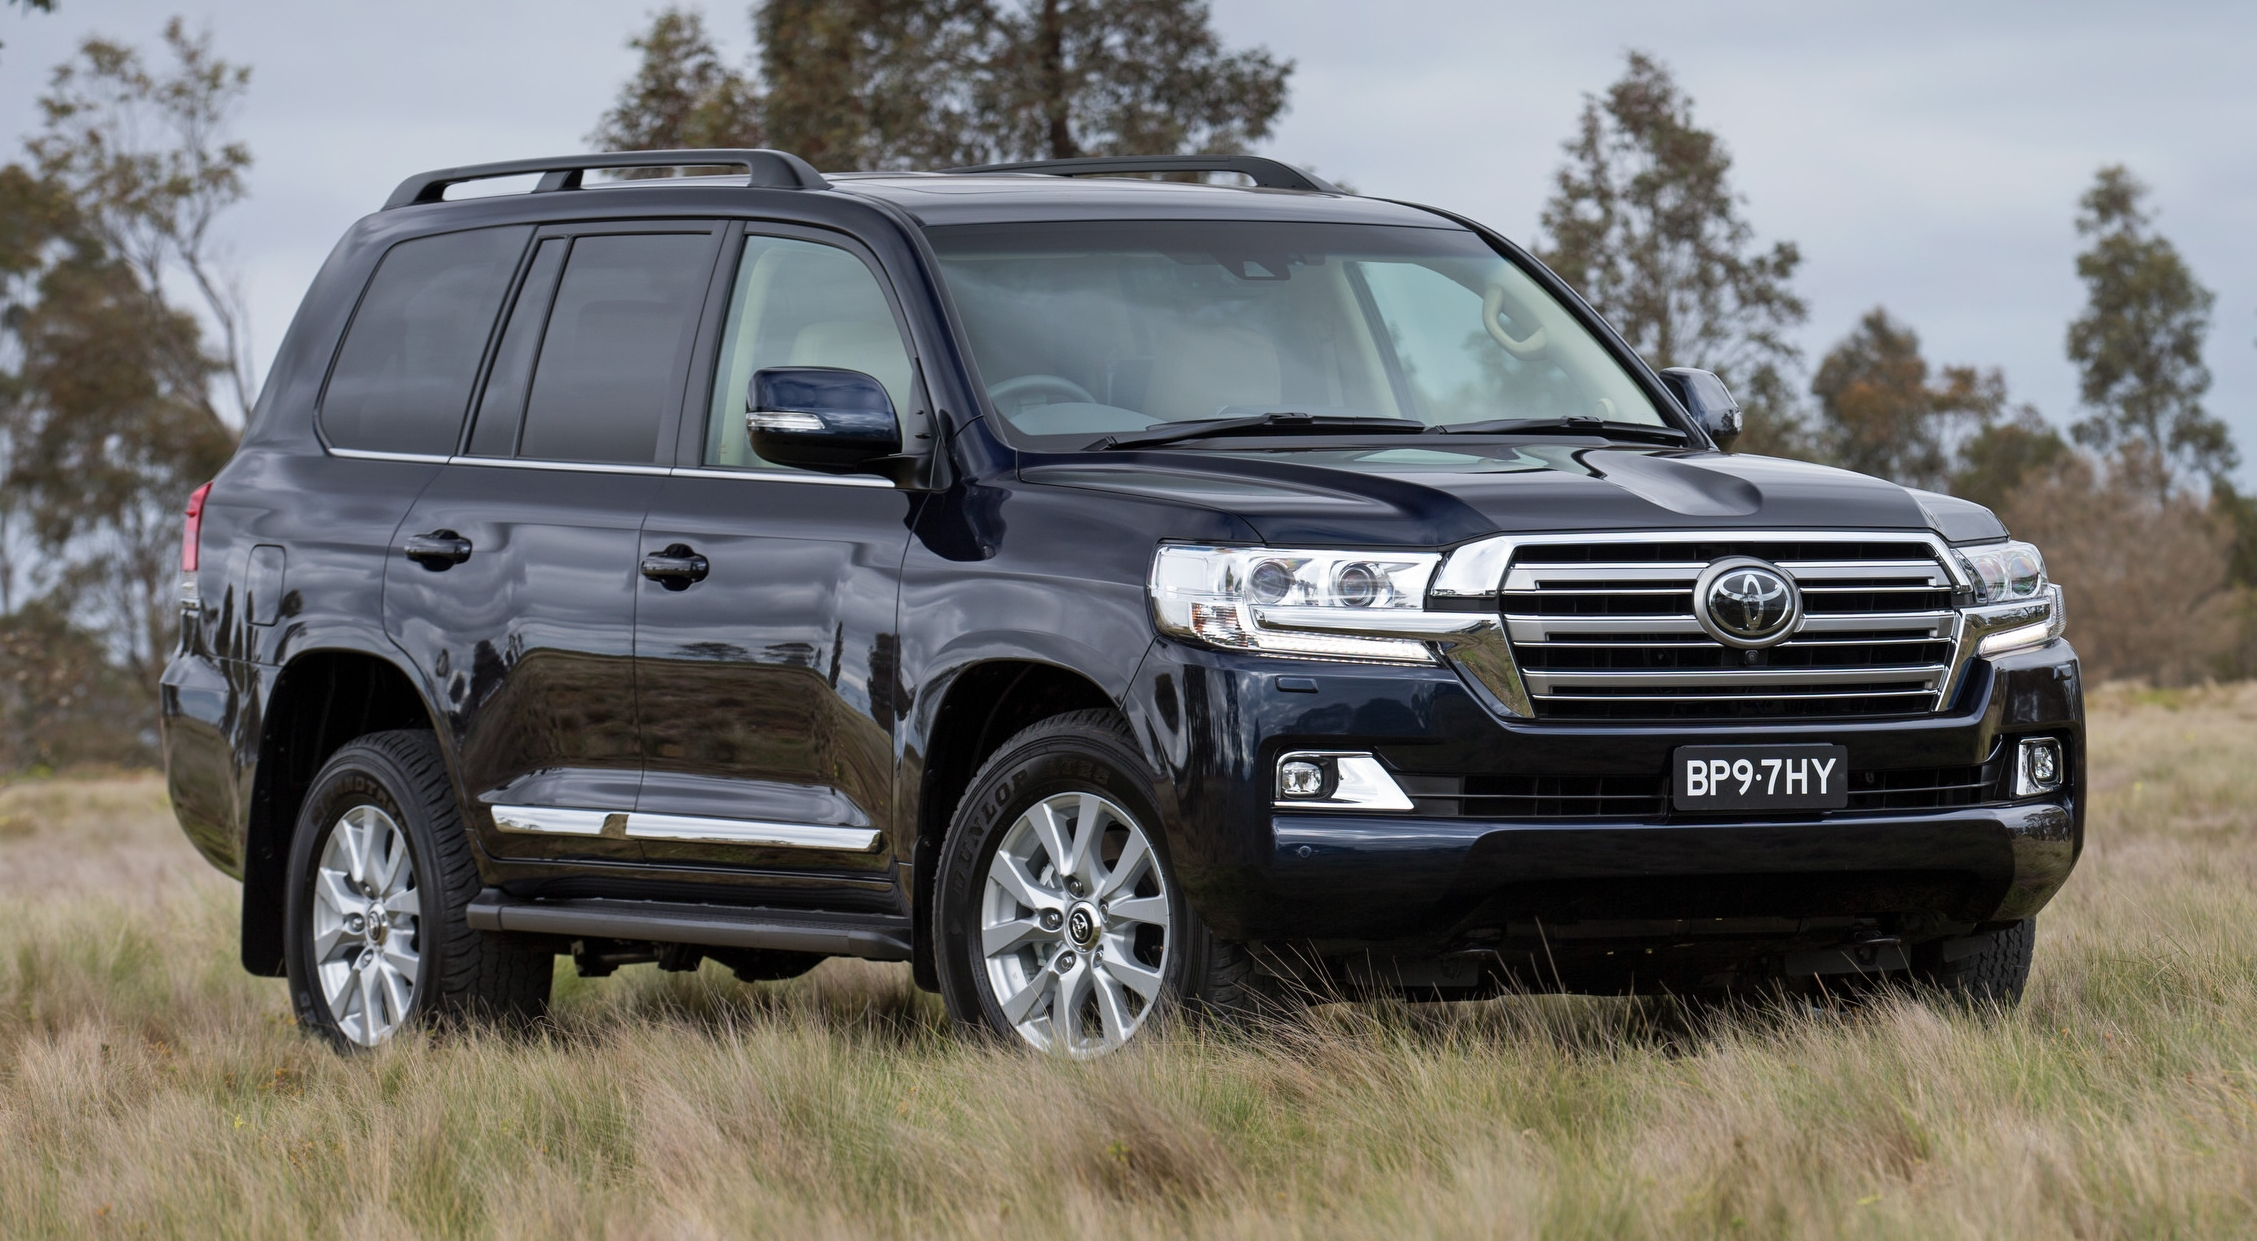 2016 toyota land cruiser the j200 facelift debuts paul tan image rh paultan org 2016 Toyota Land Cruiser Interior Toyota Land Cruiser 2015 Interior